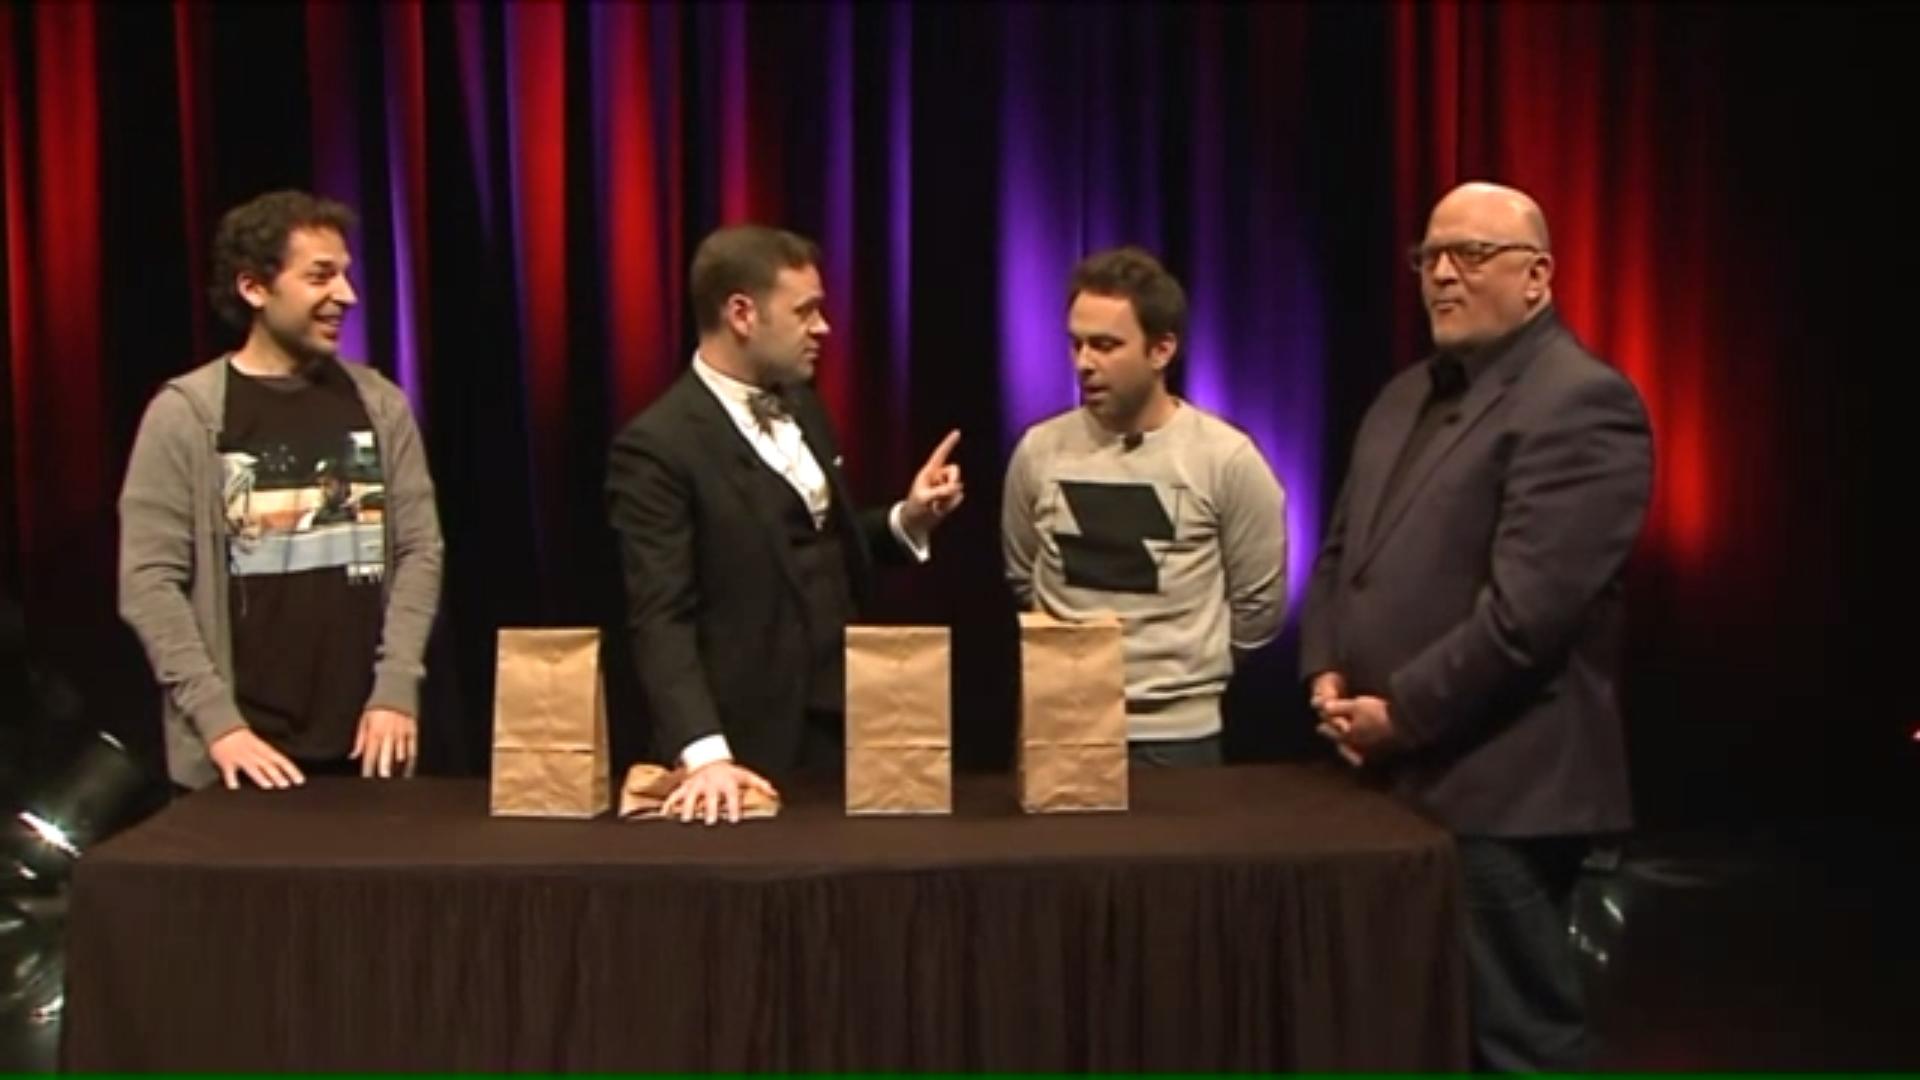 Click to watch The Magic Parlour with Charlie Day on WGN